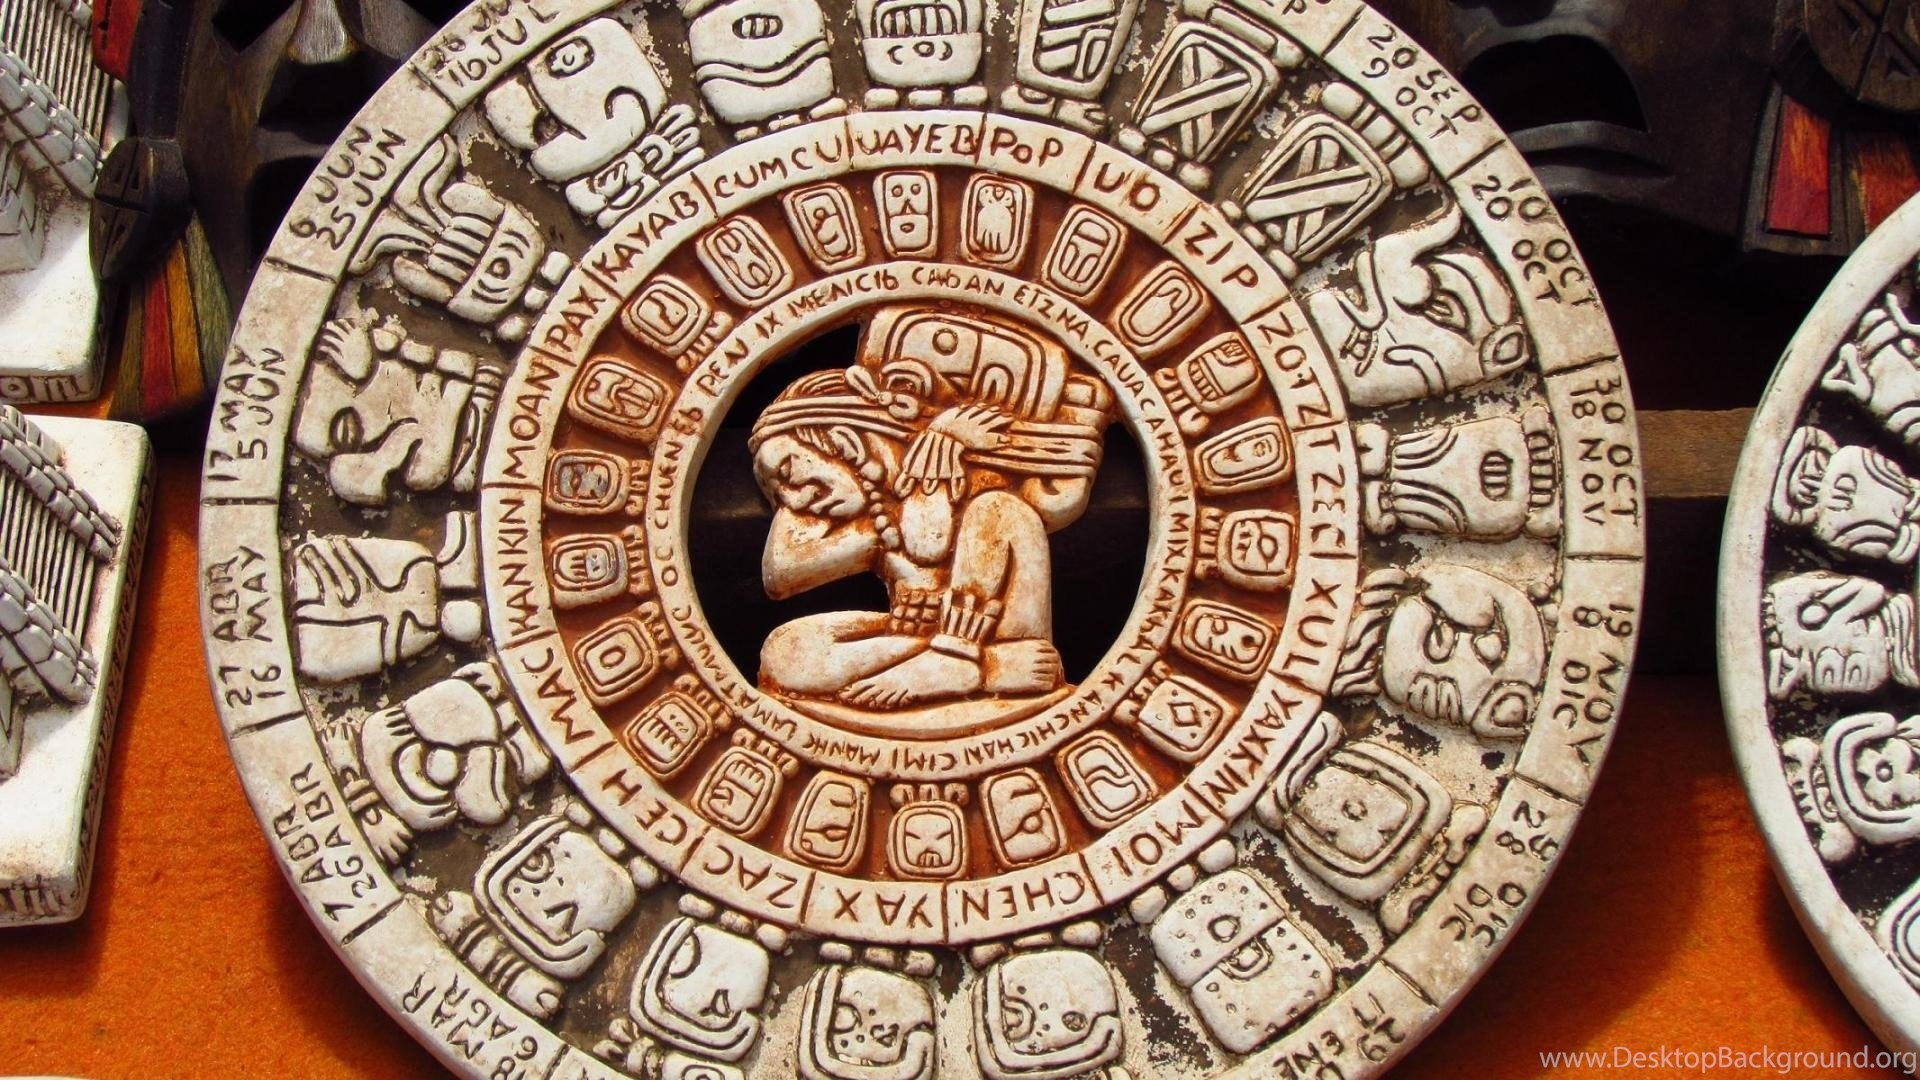 1920x1080 Civilization Maya Mayan Calendar Wallpapers